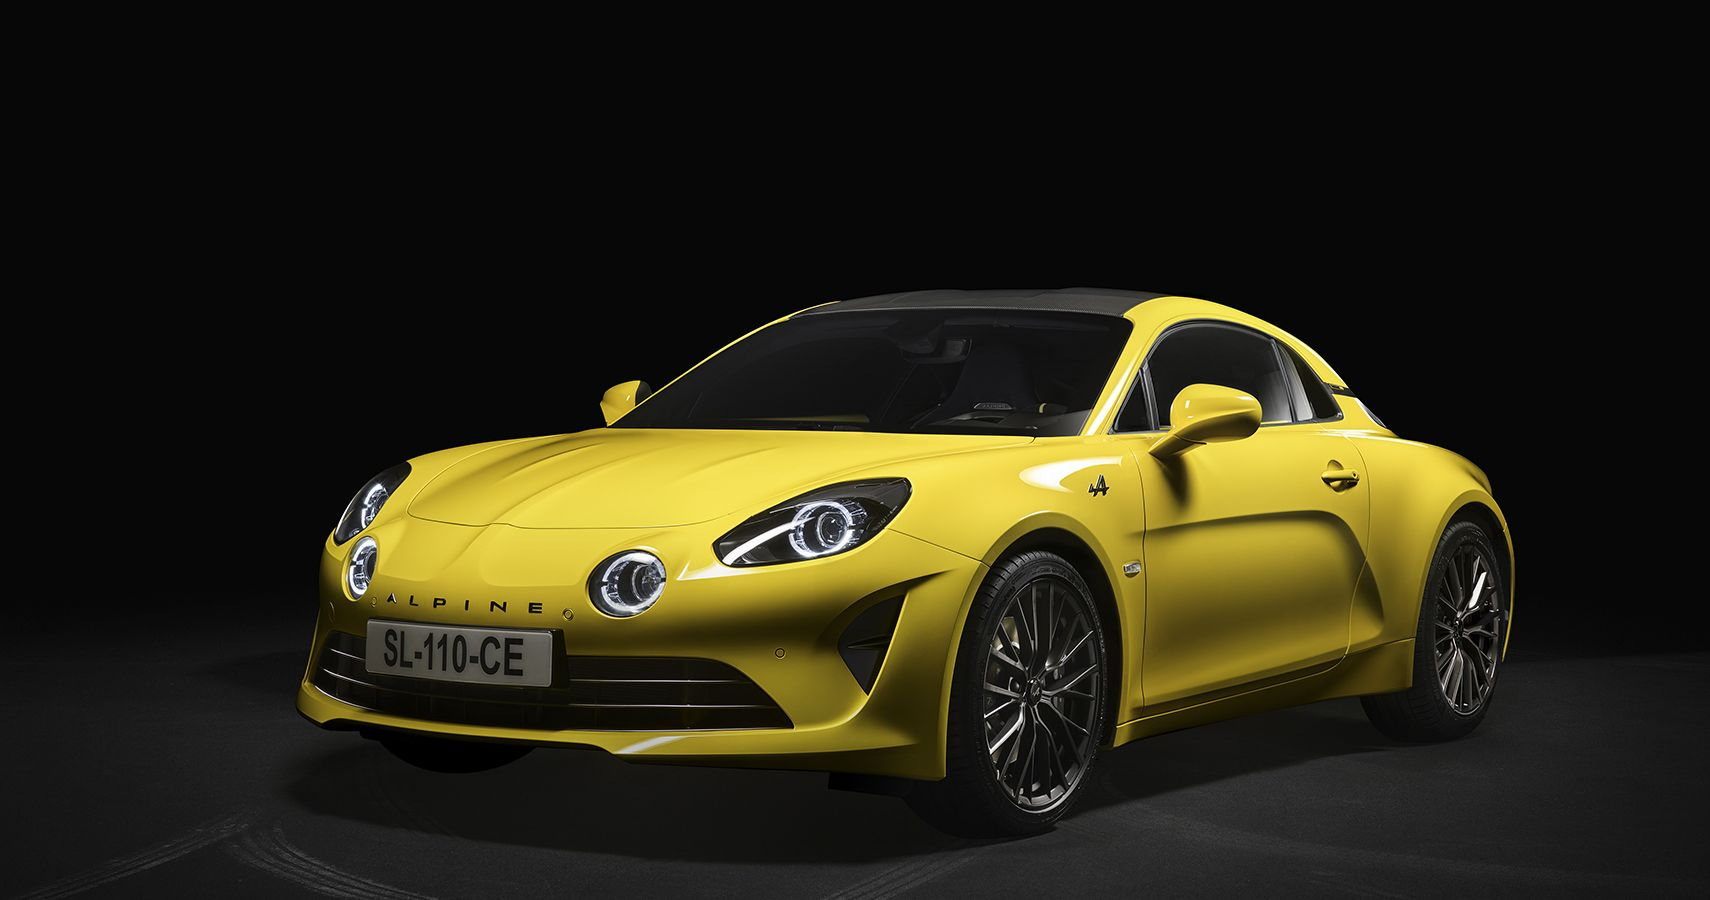 2020 Alpine A110 Color Edition Sports Exclusive Yellow Finish